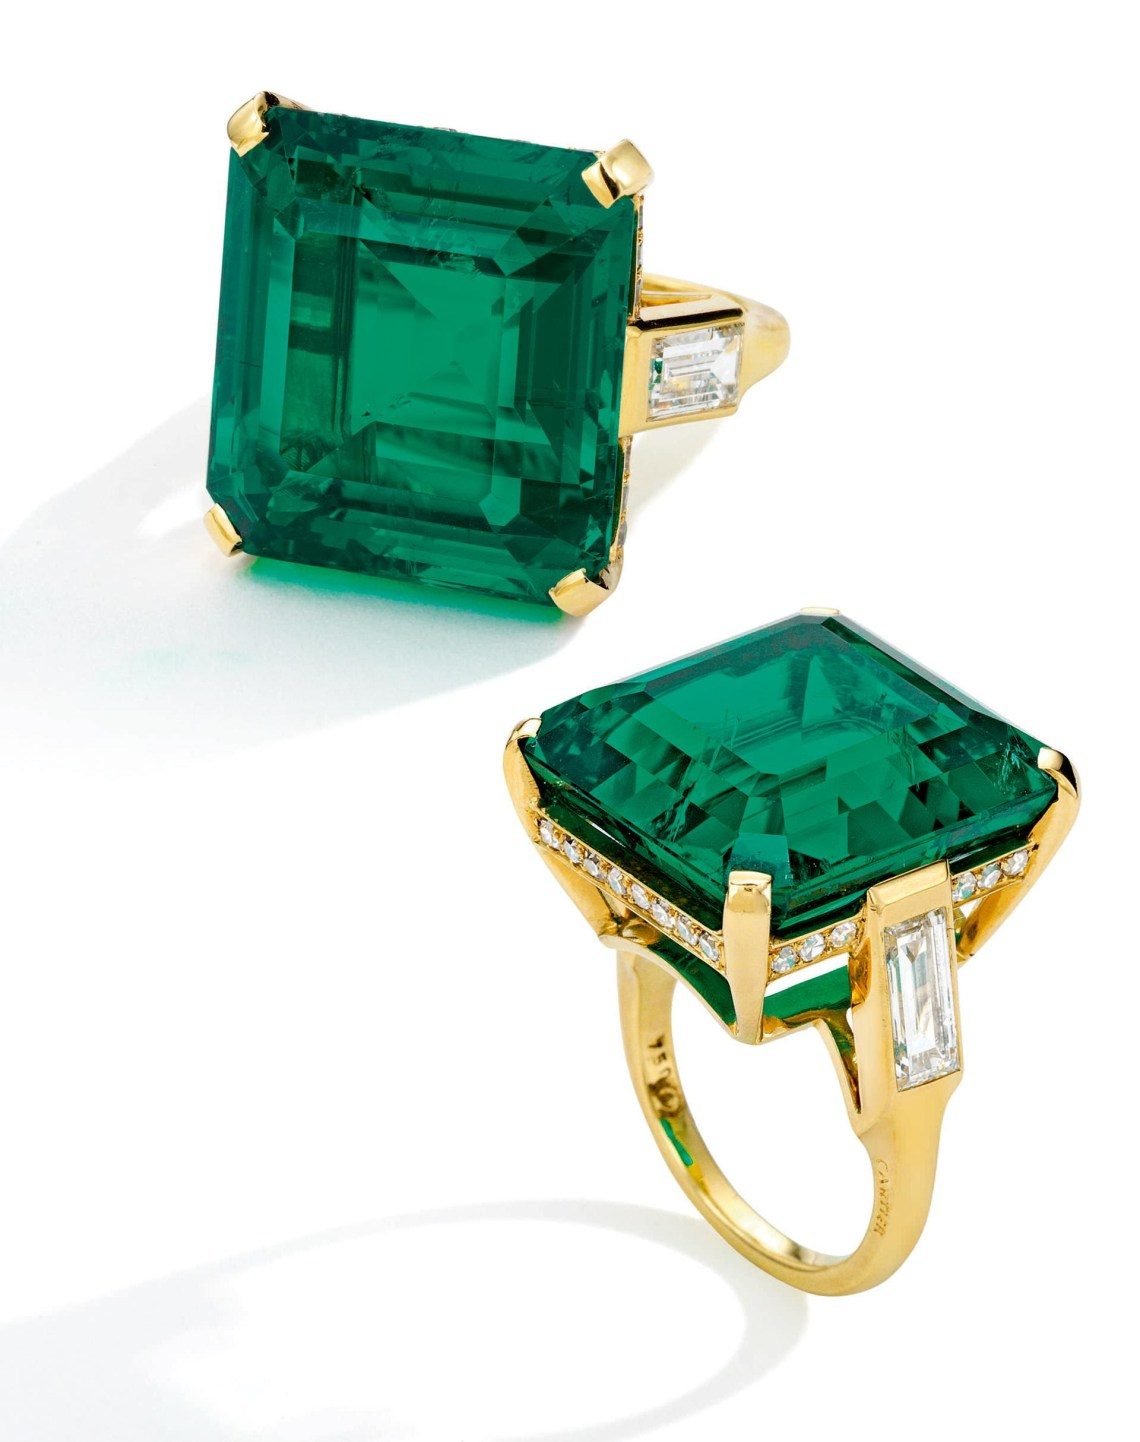 MAGNIFICENT JEWELS AUCTION 9 DECEMBER